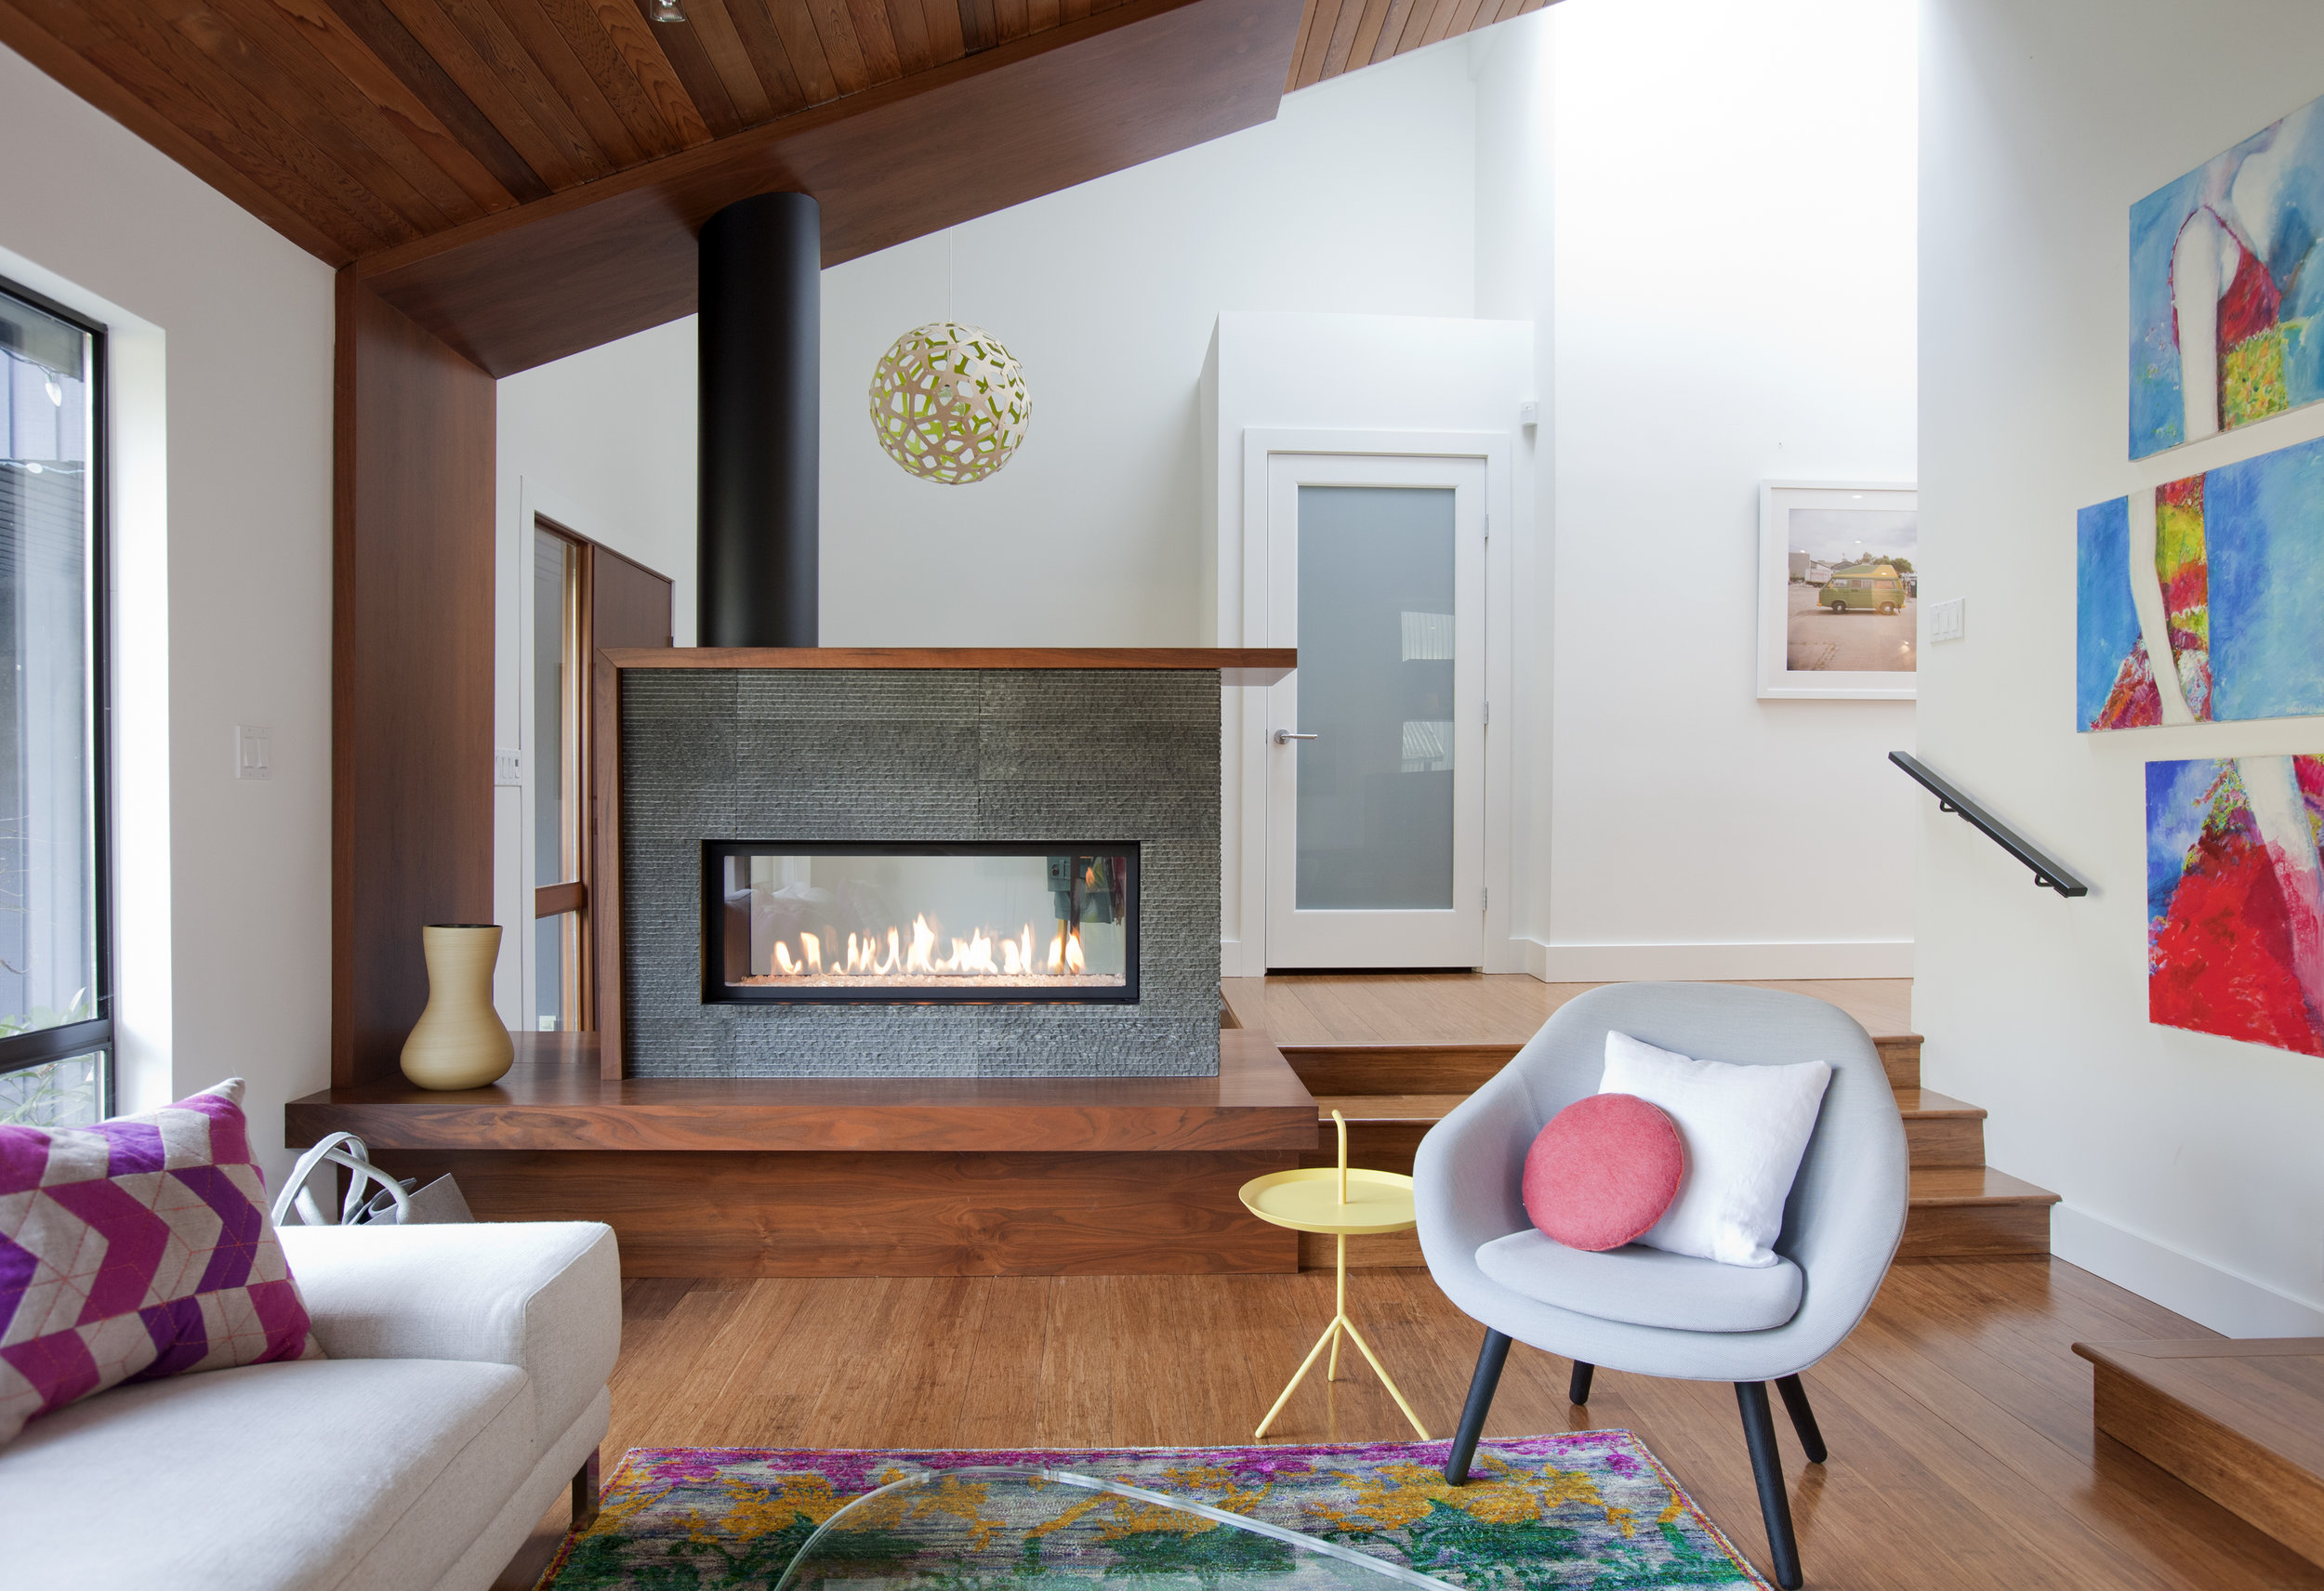 Pure Interior Design deepcove_9708